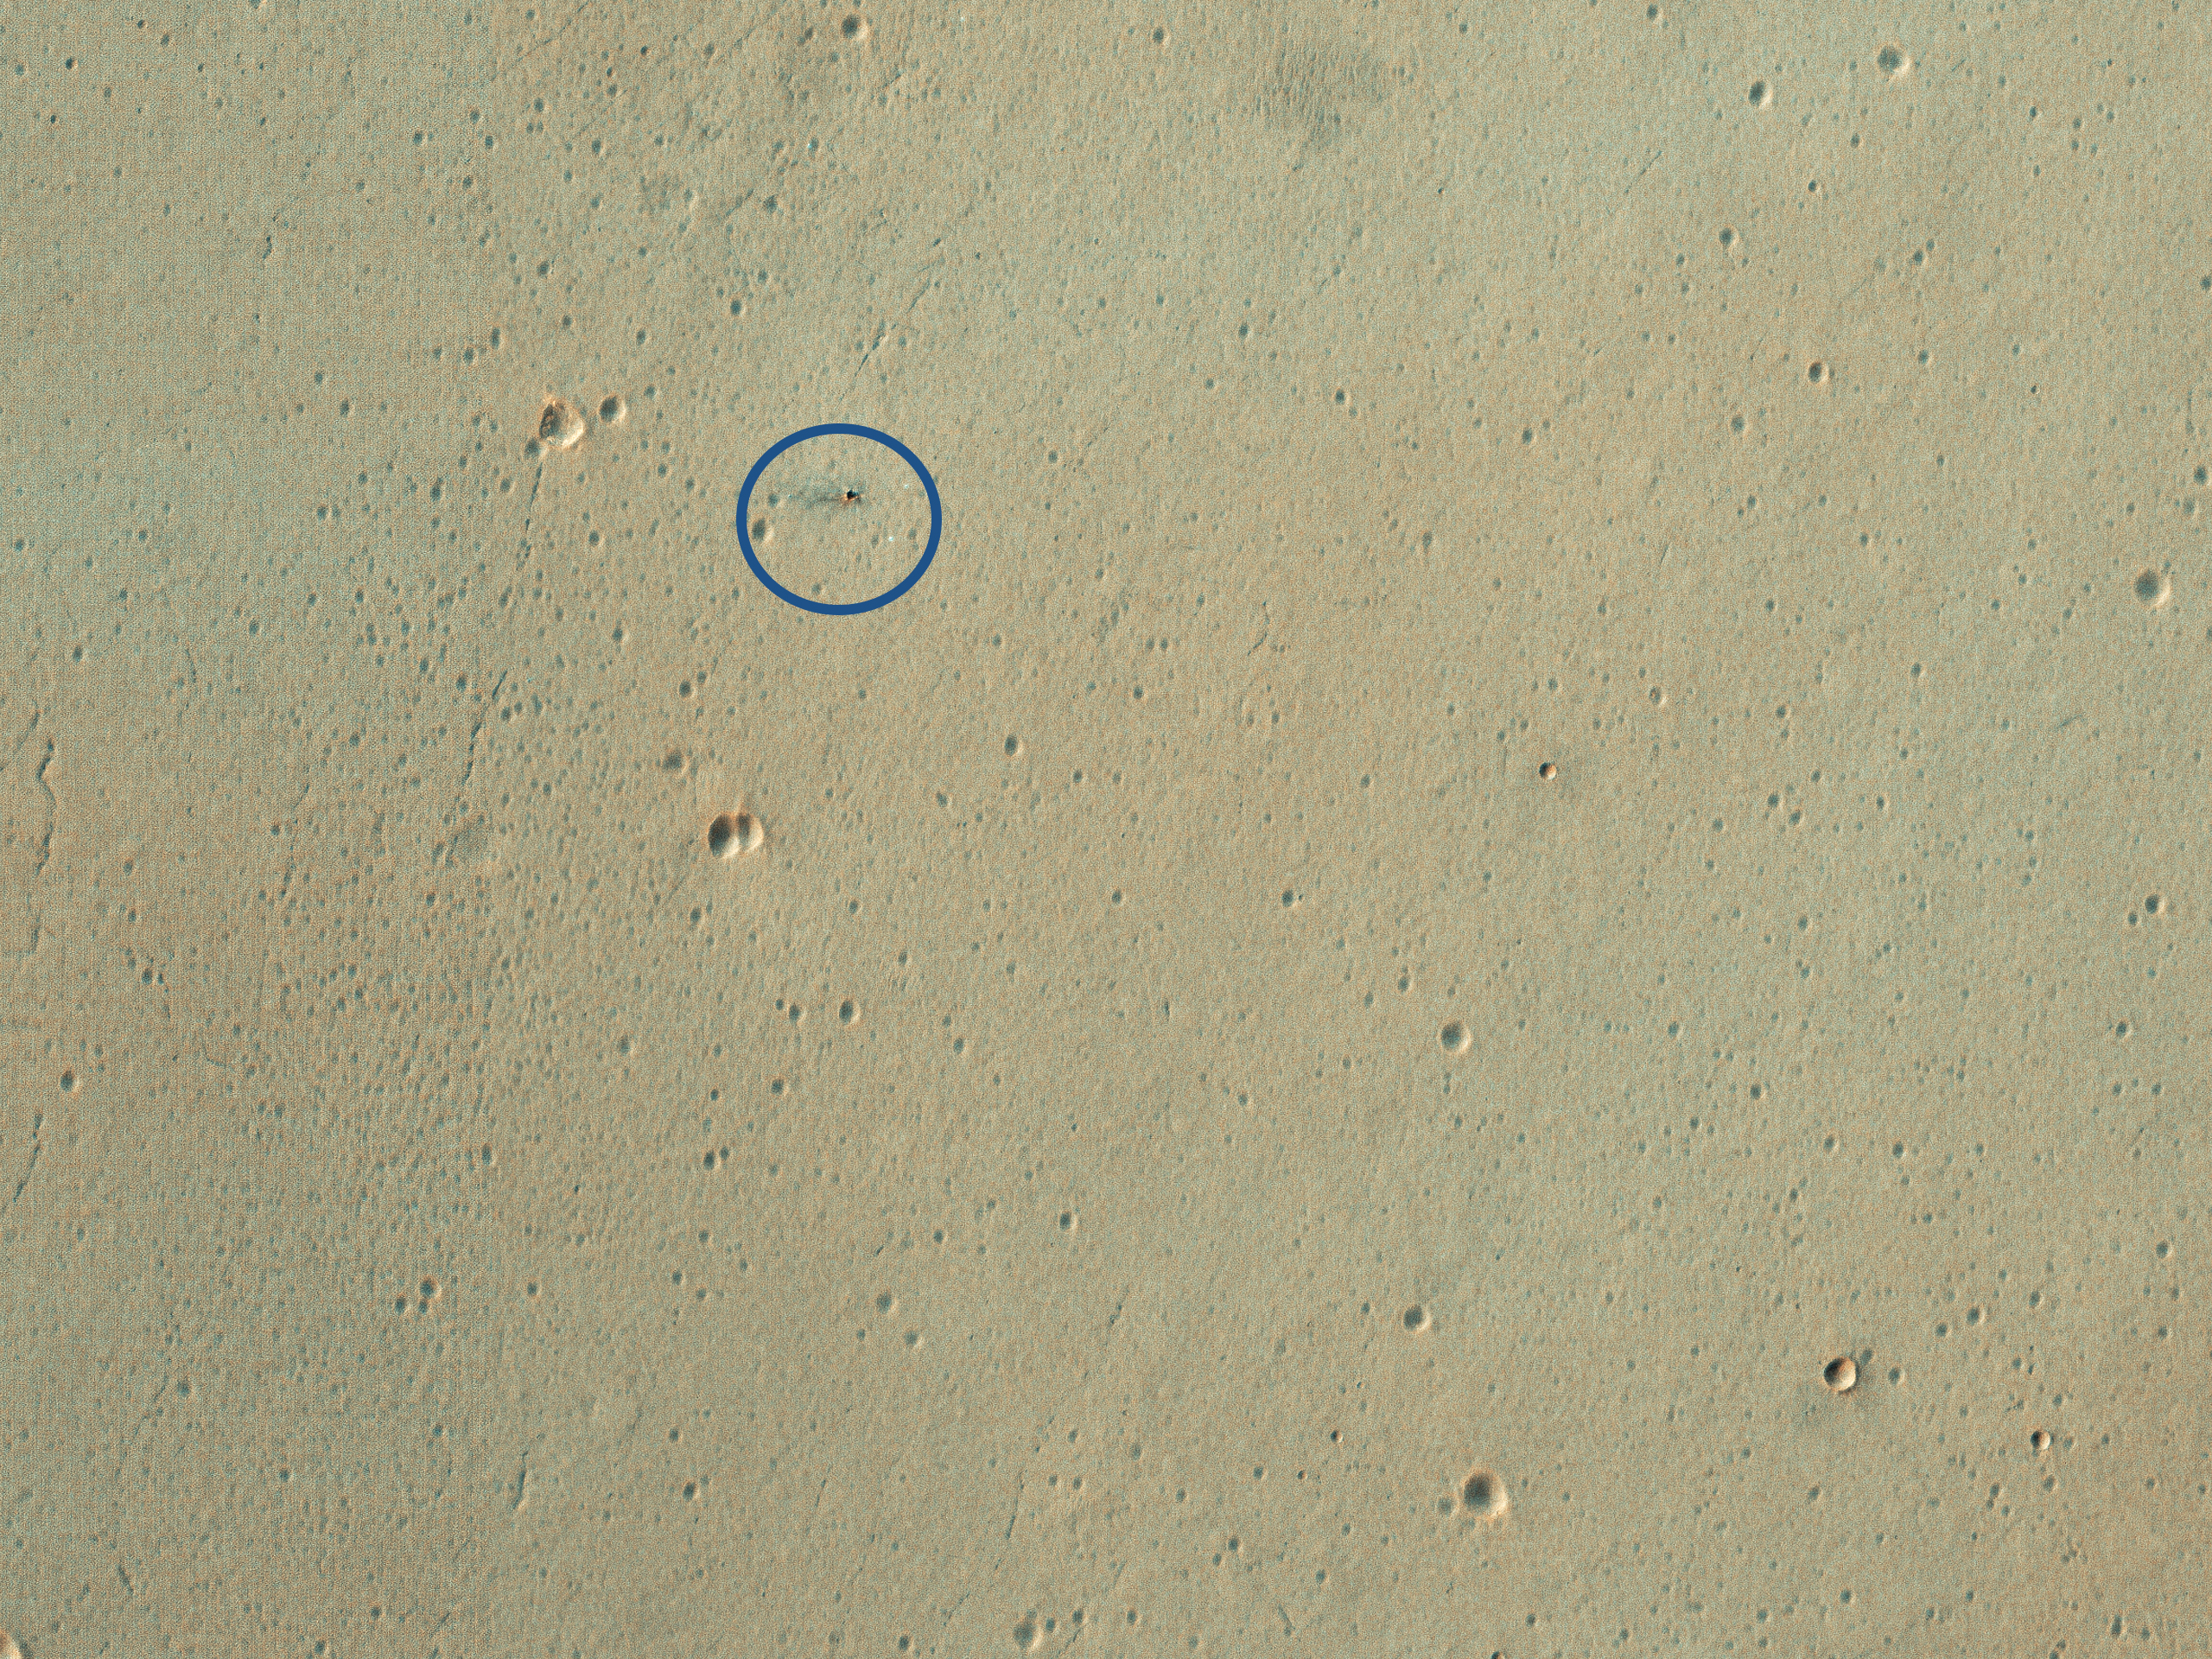 The Schiaparelli Crash Site